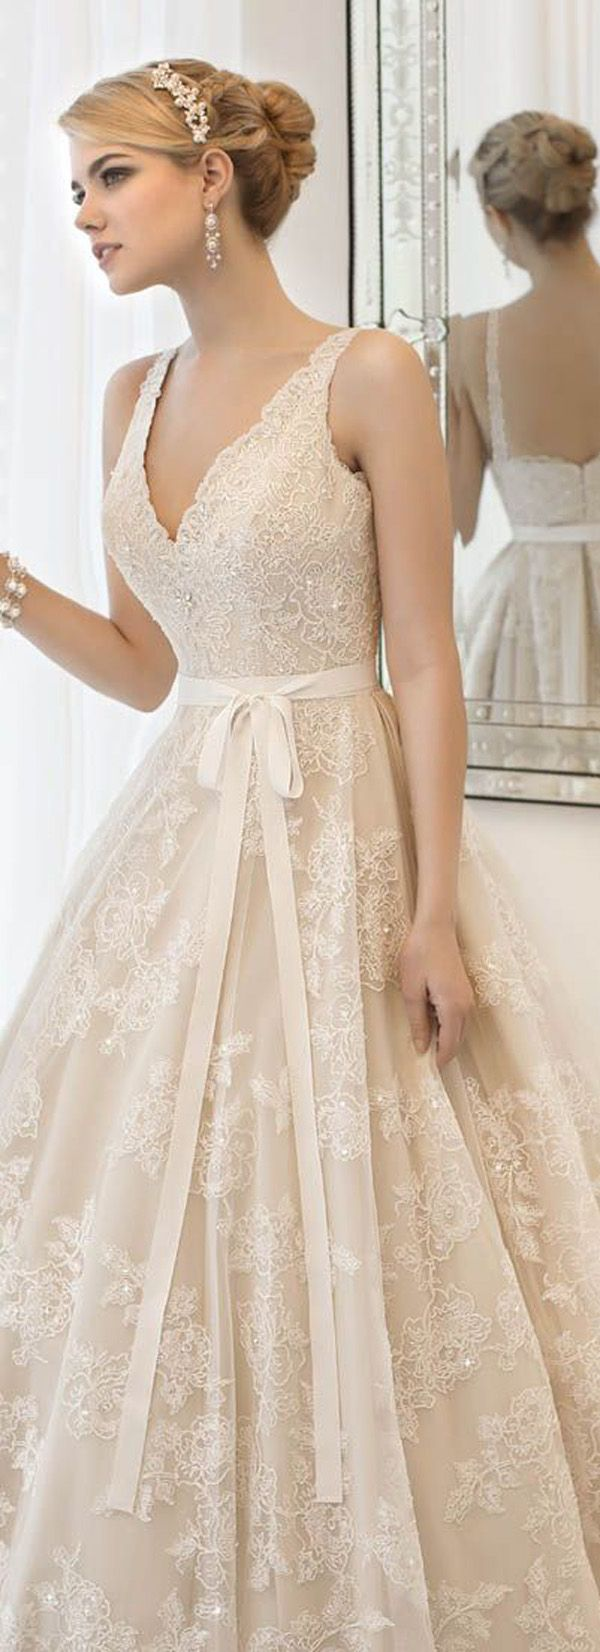 best Anyone Getting Married images on Pinterest Ball gowns